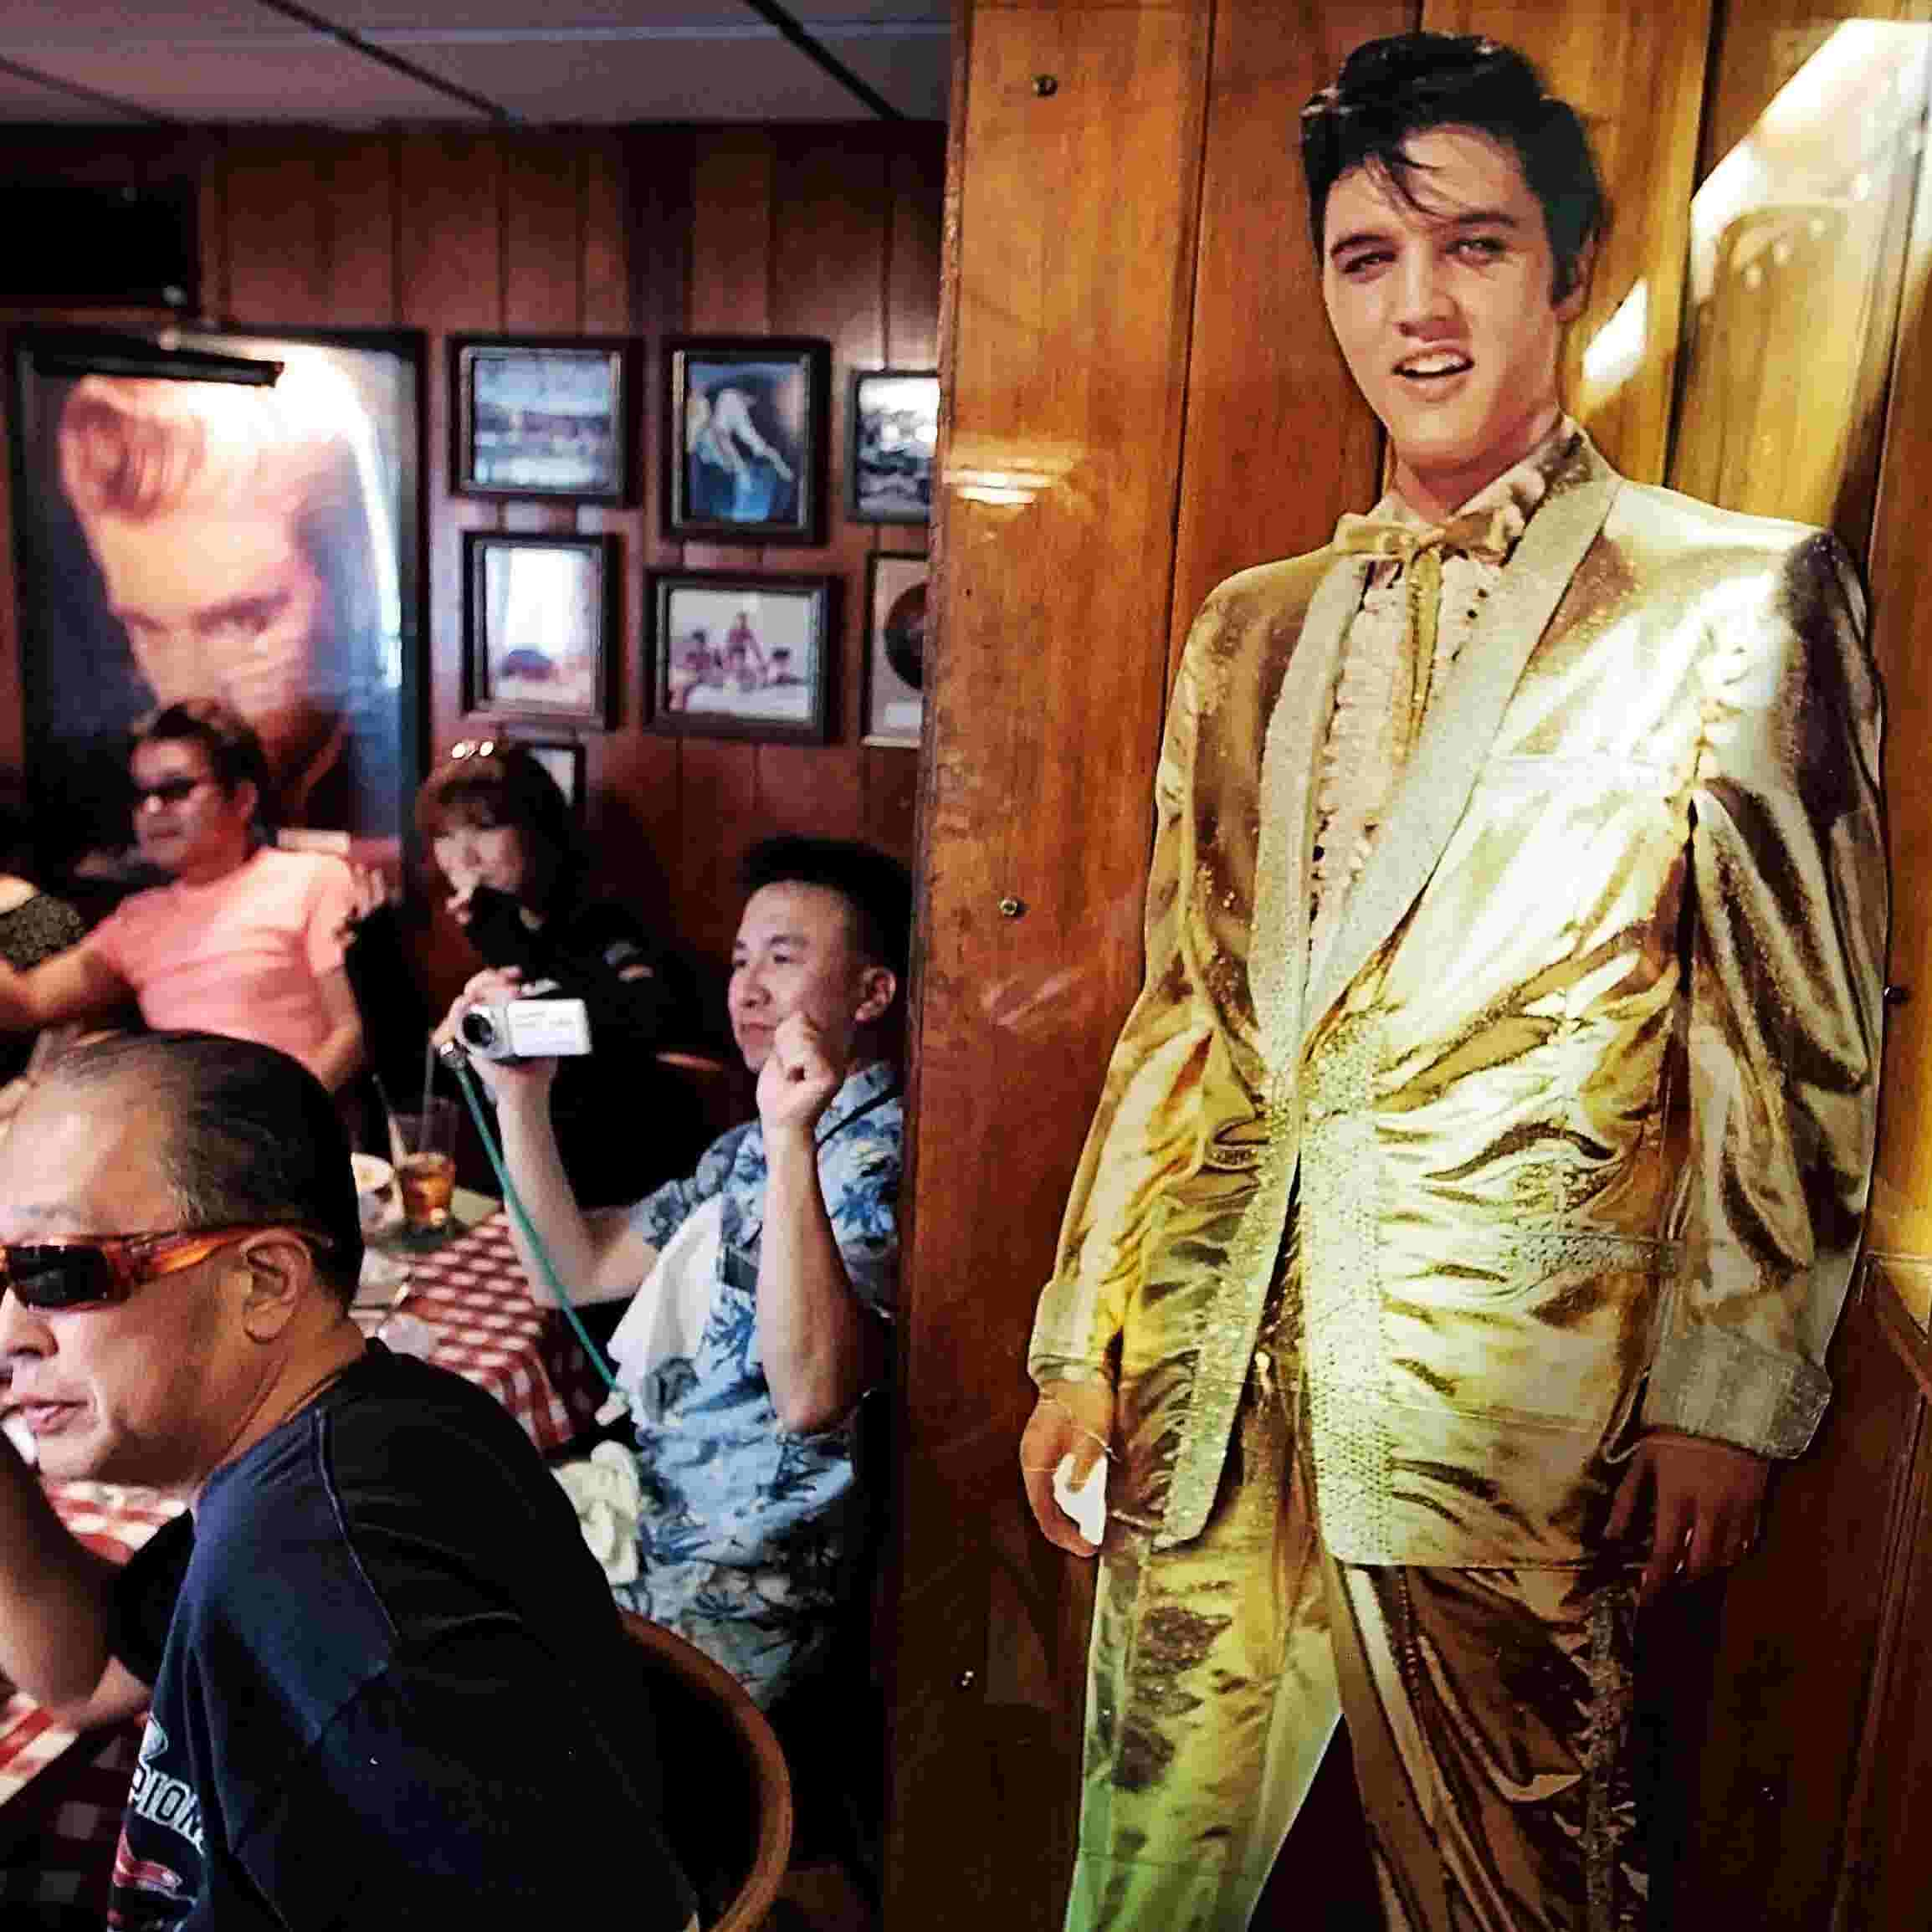 The King S Feasts Peanut Butter Bananas Barbecue And More Elvis The Commercial Appeal